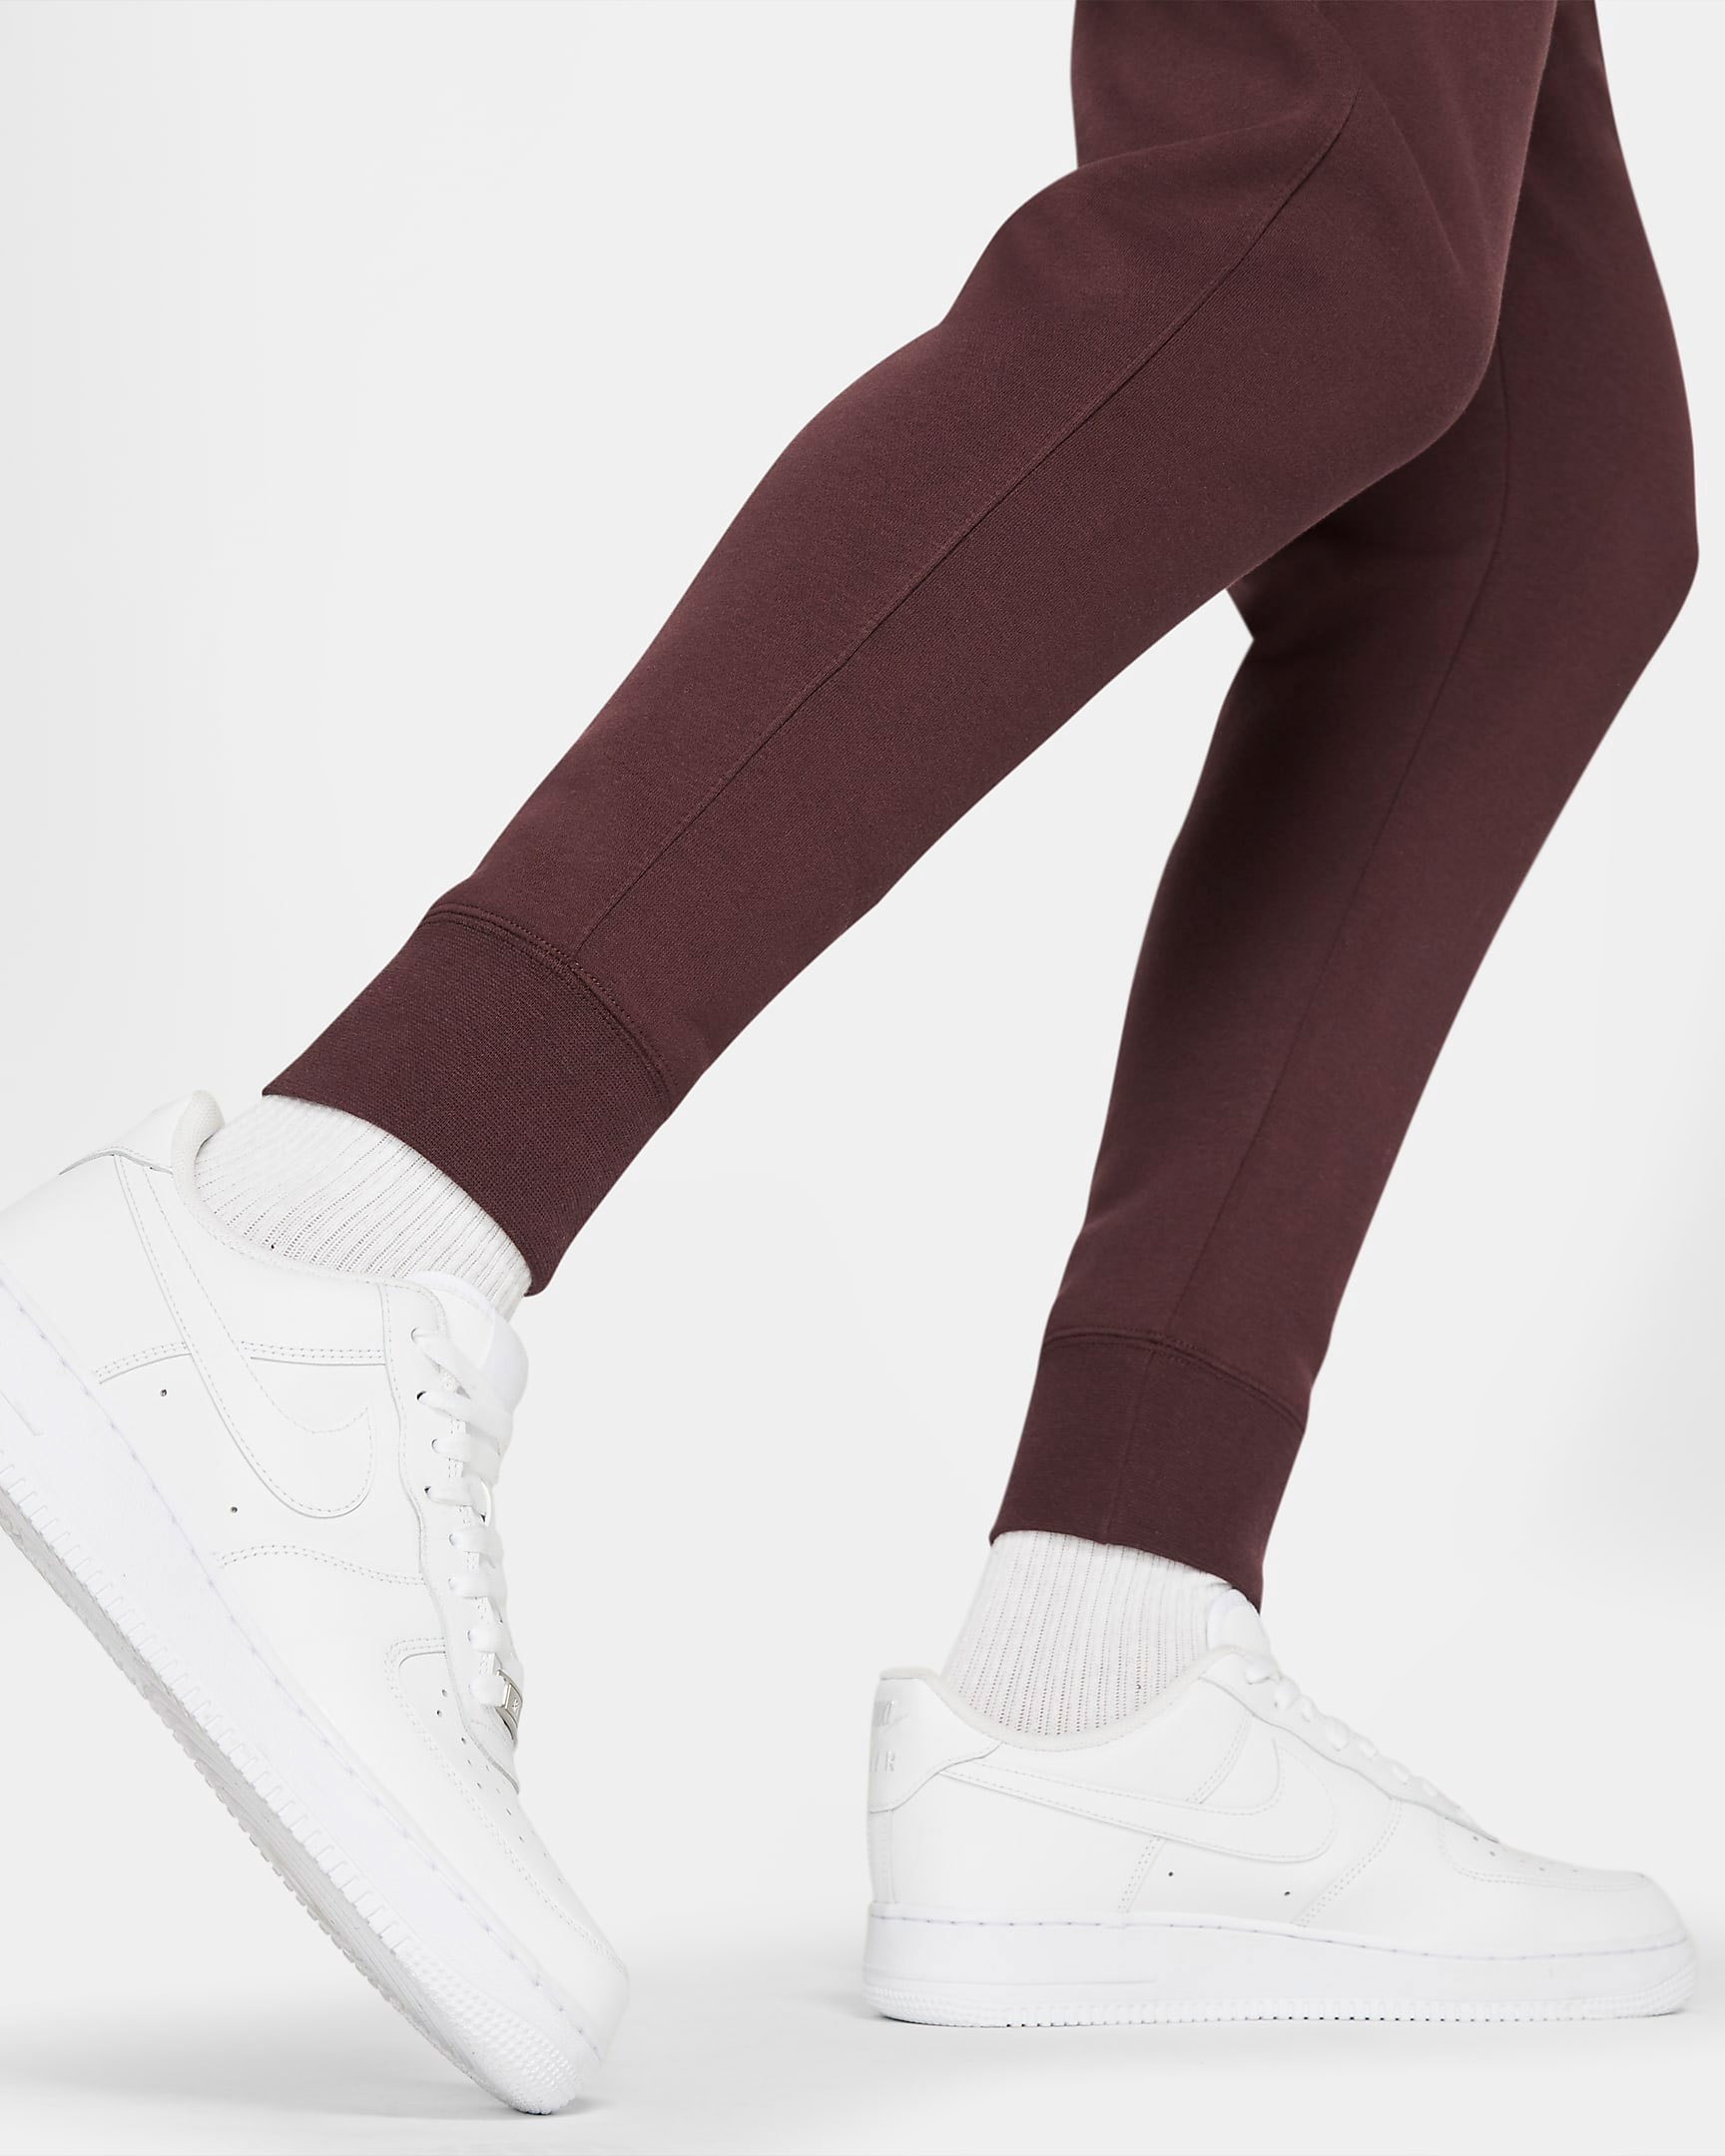 nike-club-fleece-jogger-pants-mahogany-brown-2